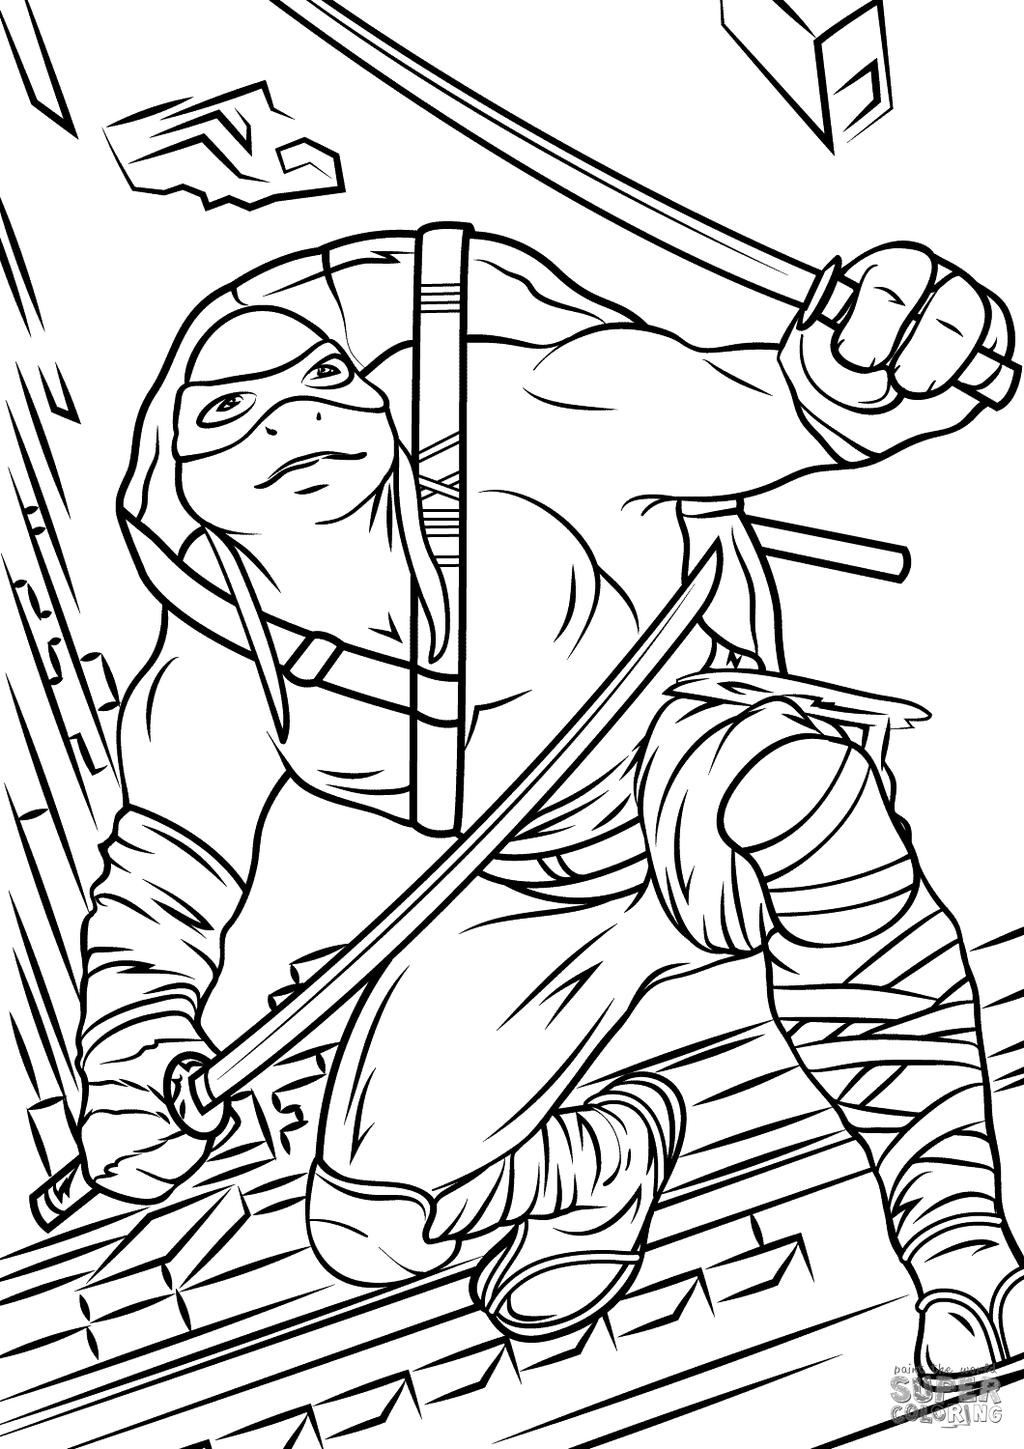 coloring pages turtles ninja songs - photo#20